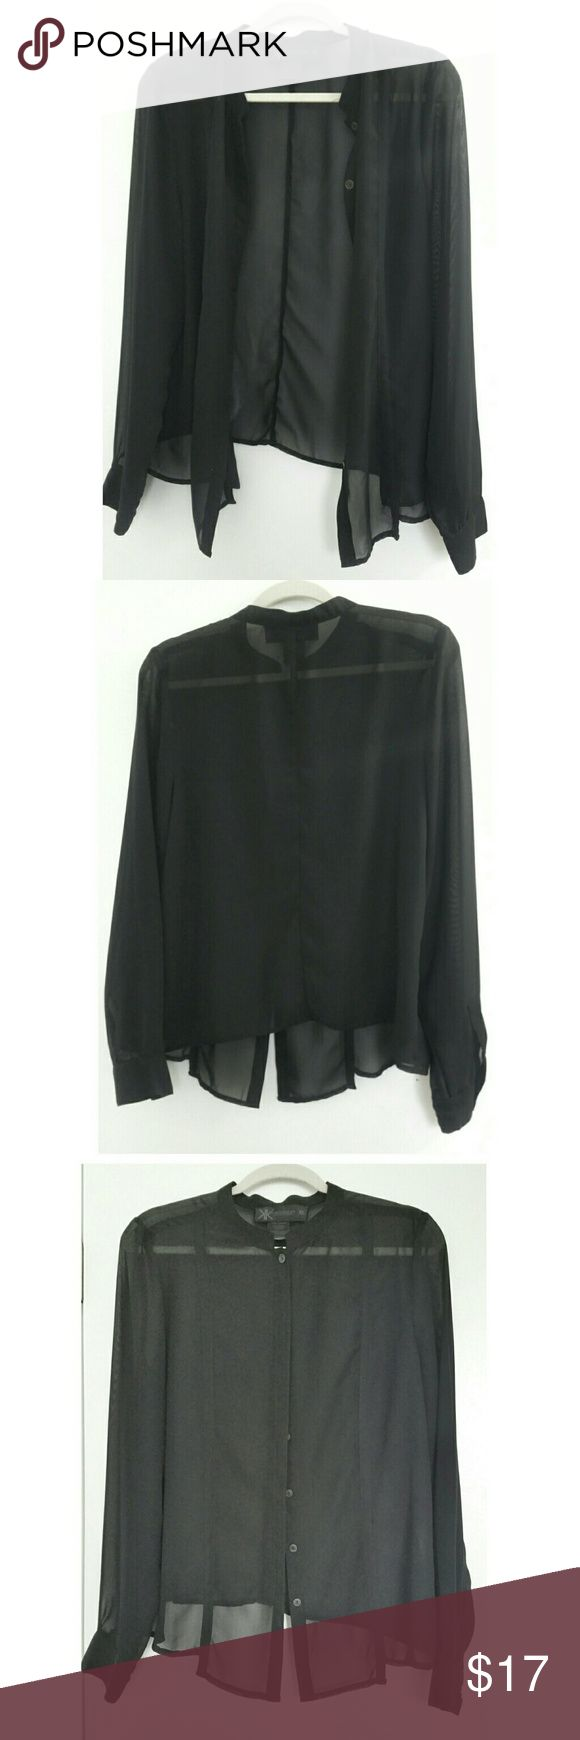 Kardashian Kollection Sheer Black Detailed Blouse This is a button up blouse by Kardashian Kollection size XL. Material is sheer. Hem is slightly asymmetrical and longer in the front than the back. Front has 2 stylish seams going down, very simple but very unique. Beautiful top in great condition. Kardashian Kollection Tops Blouses